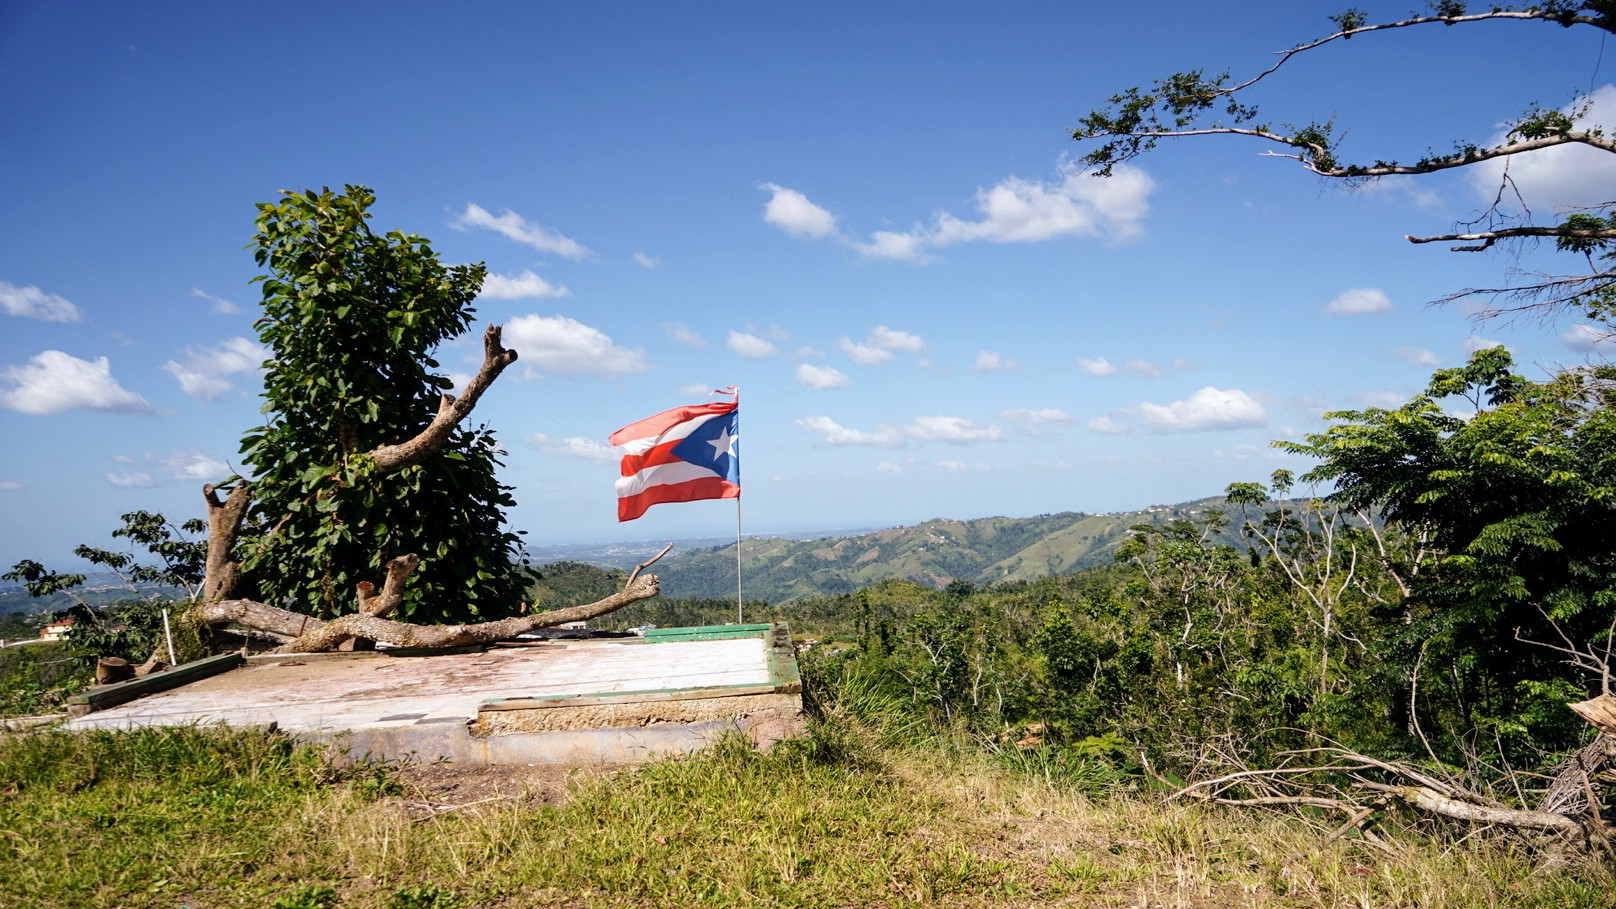 Puerto Rico's flag waves high over the community of Orocovis. (Tony Morain, Direct Relief)